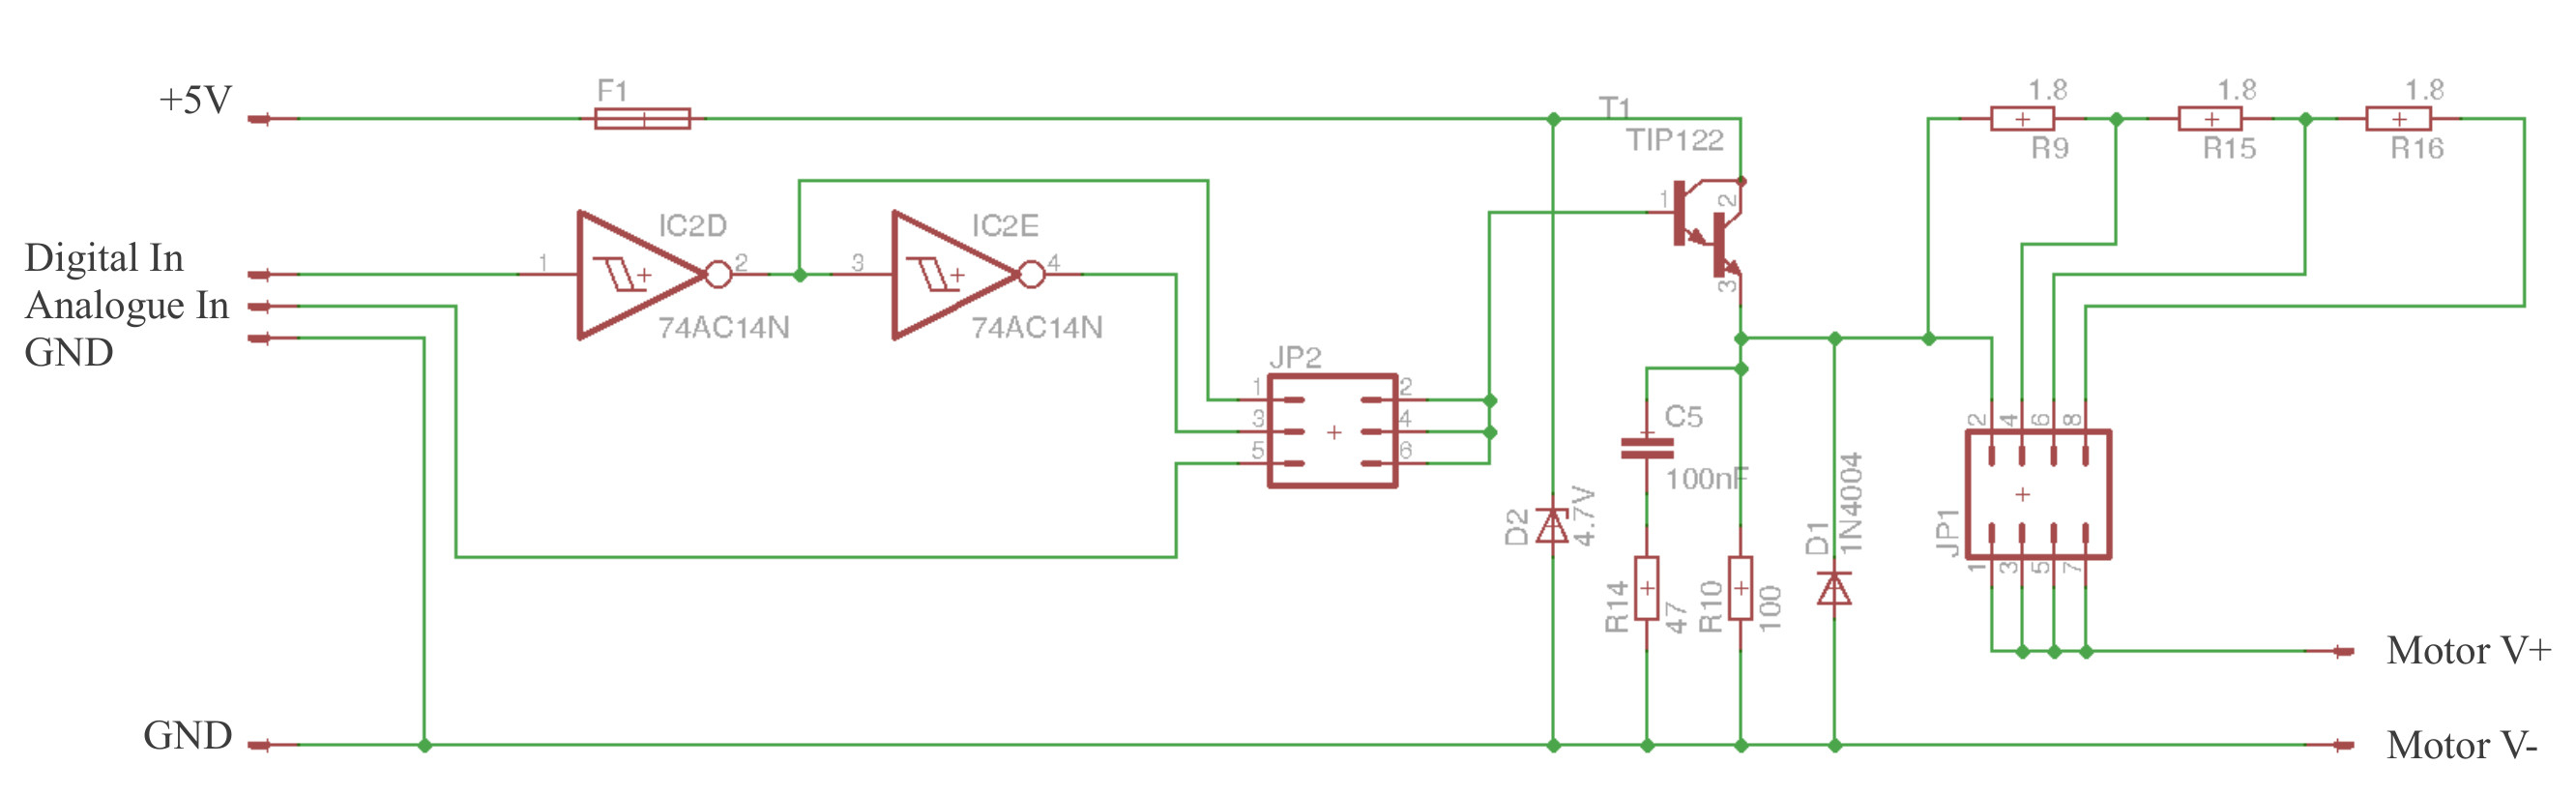 Perpetual Pi Circuit Diagram For A Pulse Width Modulated Variable Frequency Drive Approximating Analogue Control Using Modulation As Shown In Figure 9 The Eagle Files And Pcb Layout This Is Available Here